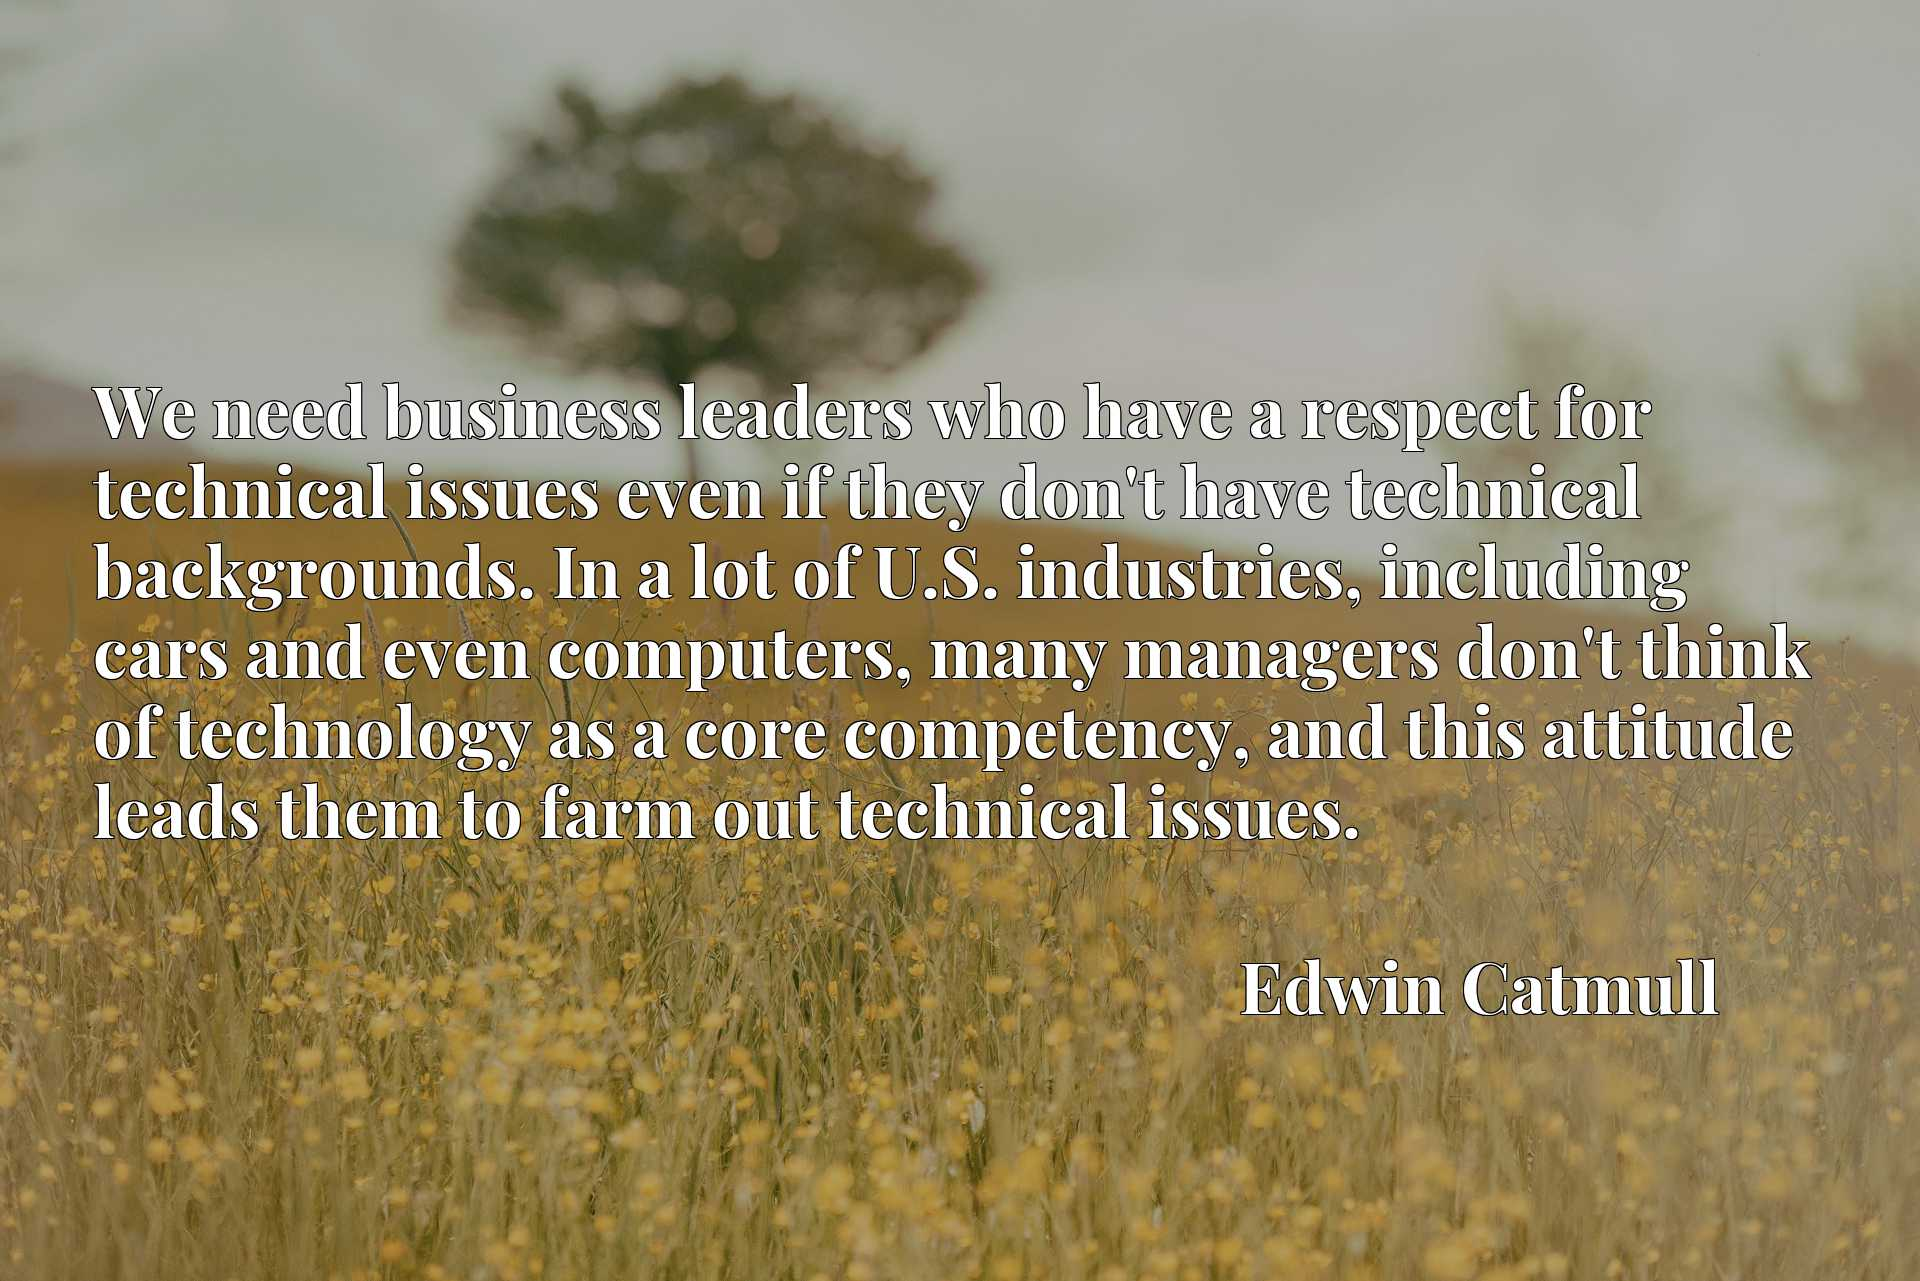 We need business leaders who have a respect for technical issues even if they don't have technical backgrounds. In a lot of U.S. industries, including cars and even computers, many managers don't think of technology as a core competency, and this attitude leads them to farm out technical issues.